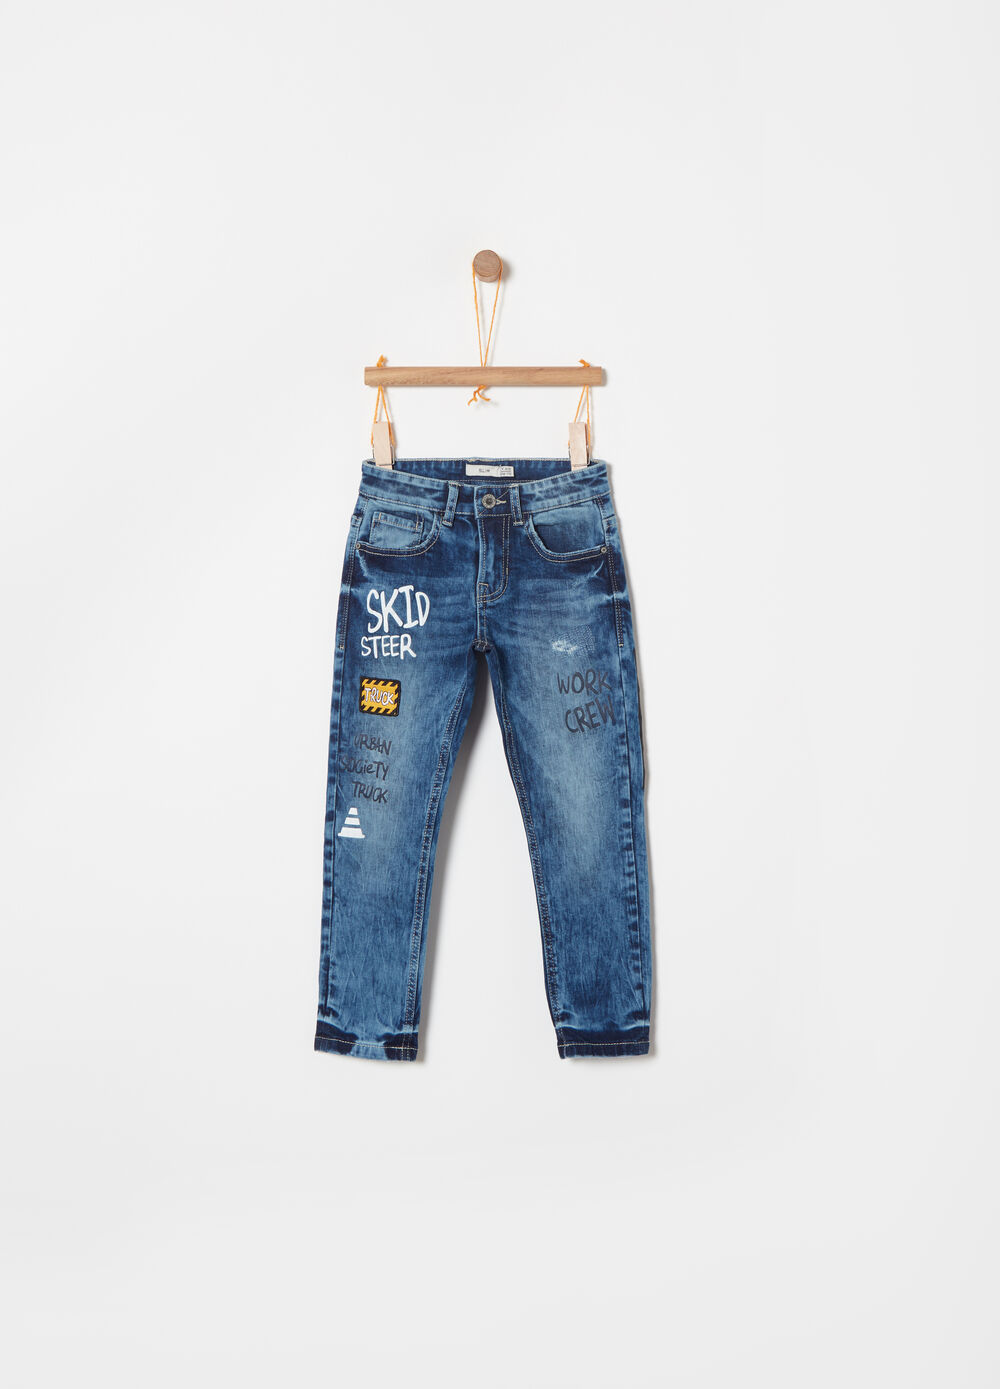 Misdyed stretch slim jeans with print